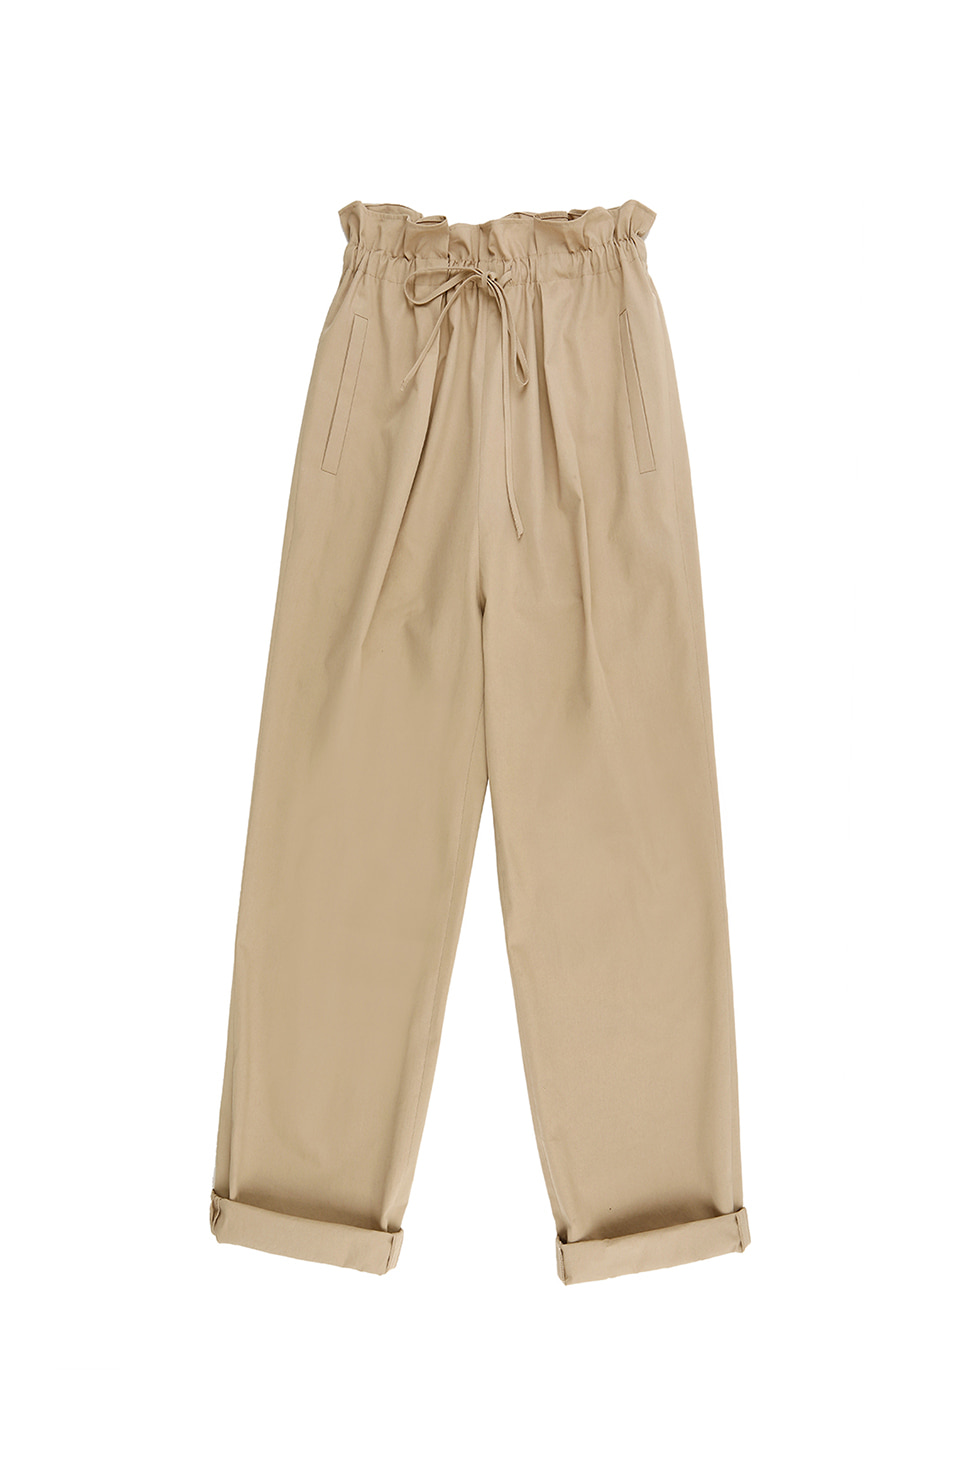 BANDING COTTON PANTS - BEIGE